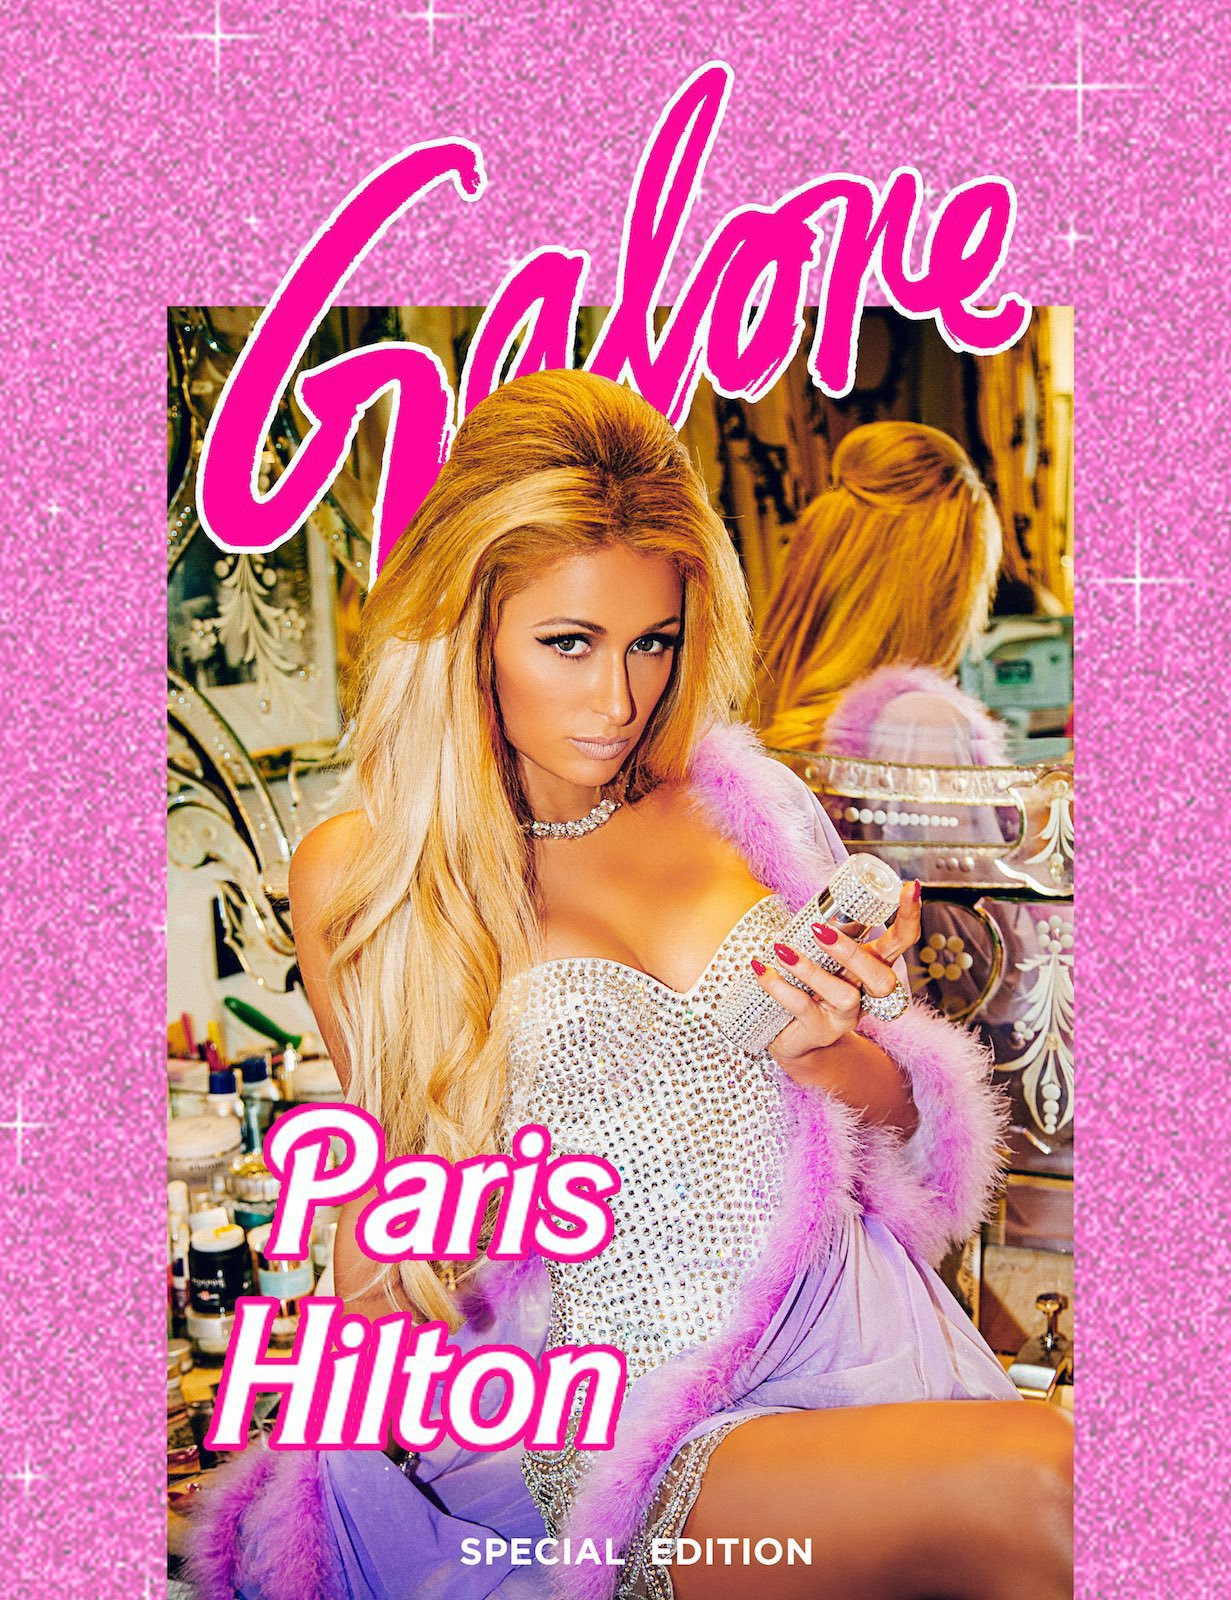 Paris Hilton on the cover of Galore magazine